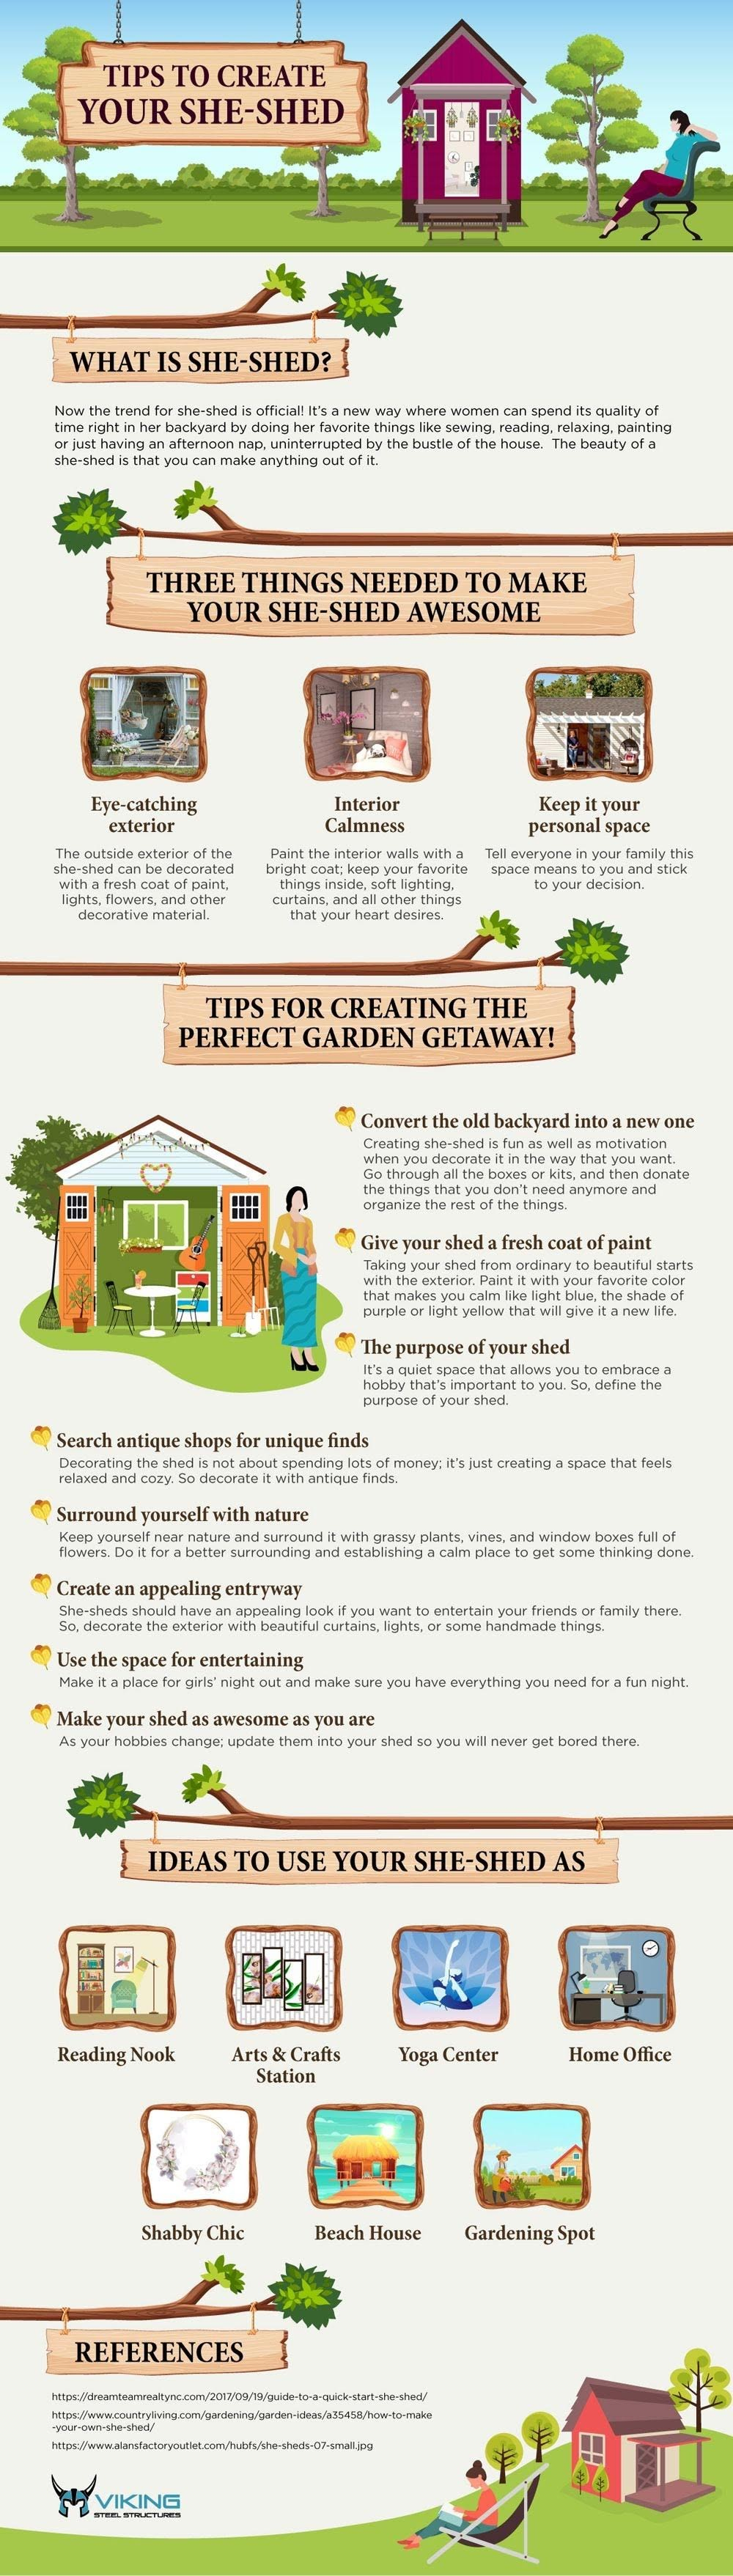 Tips To Create Your She-Shed #infographic